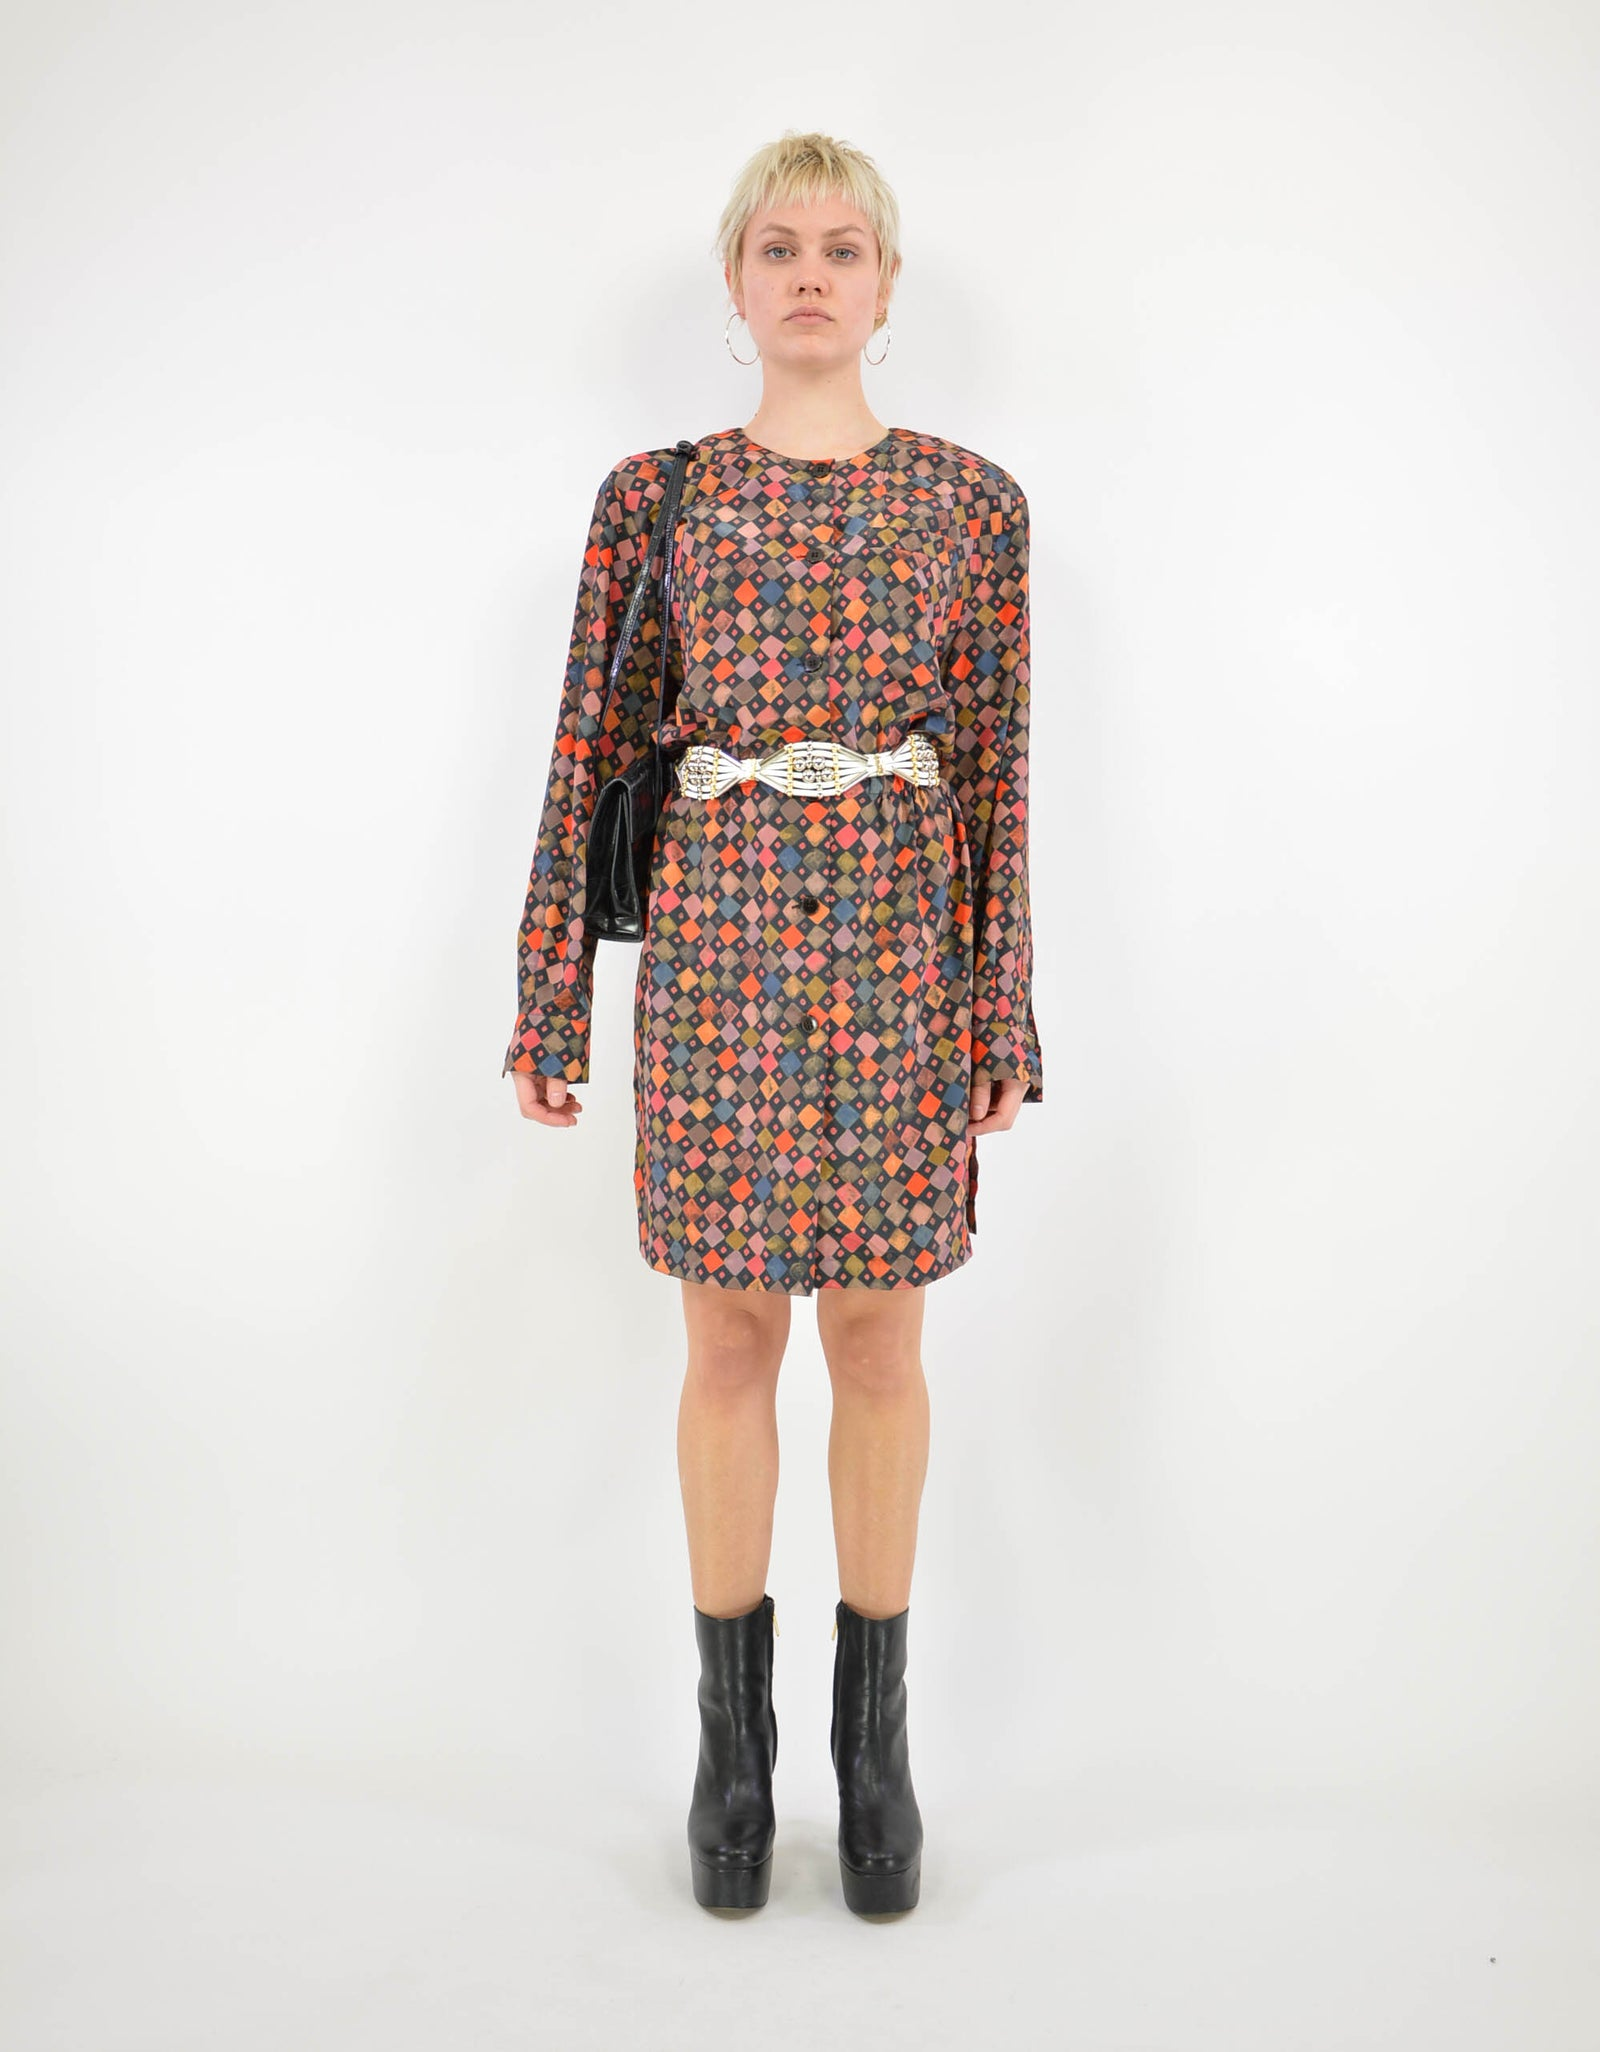 90s print dress - PICKNWEIGHT - VINTAGE KILO STORE